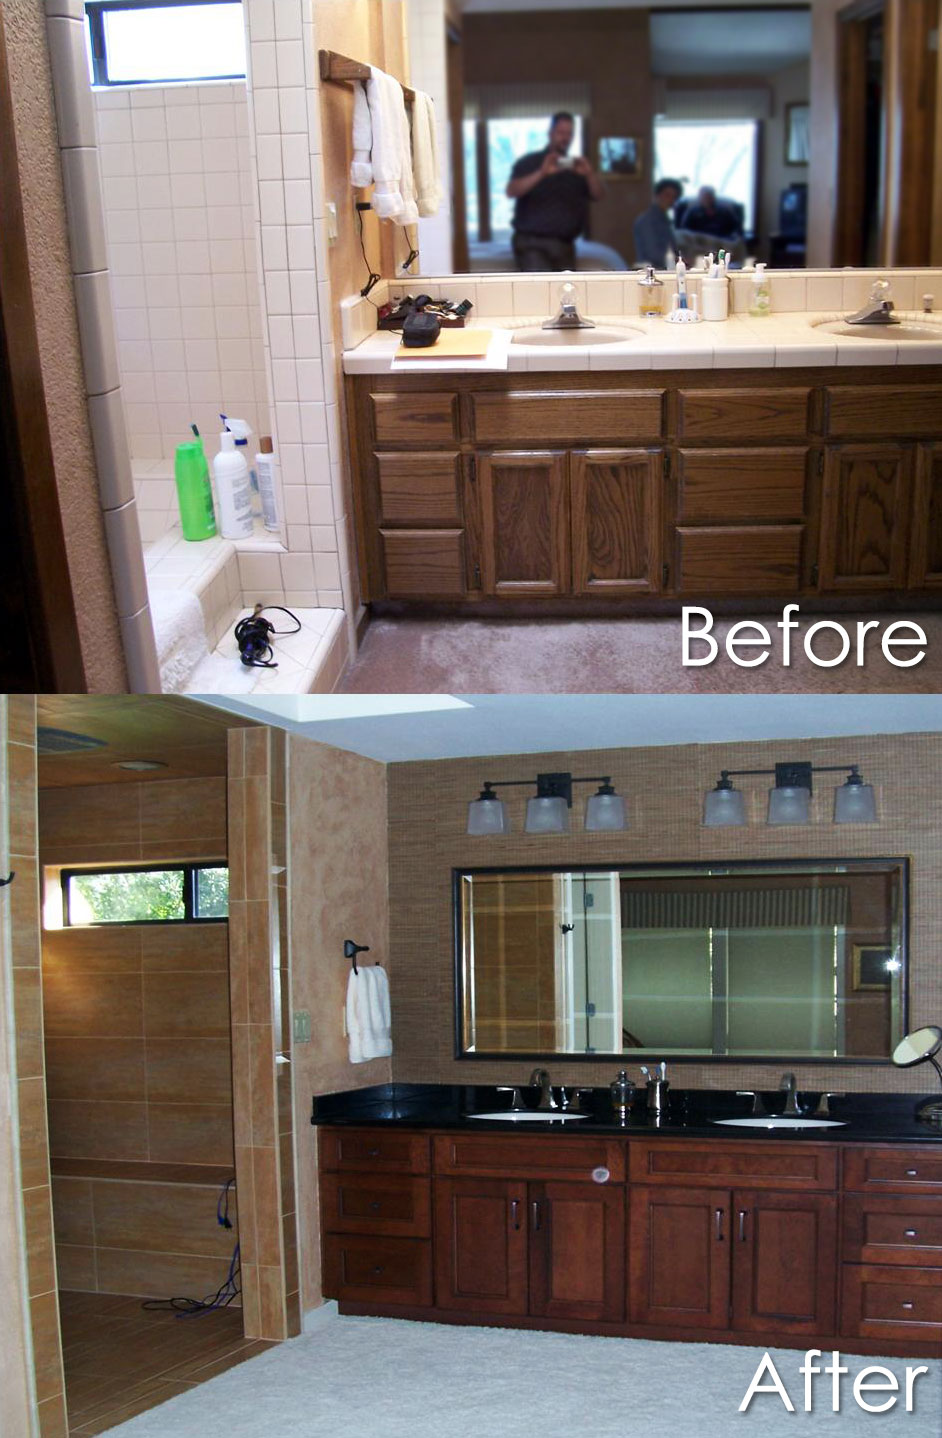 Home Renovation Before/After